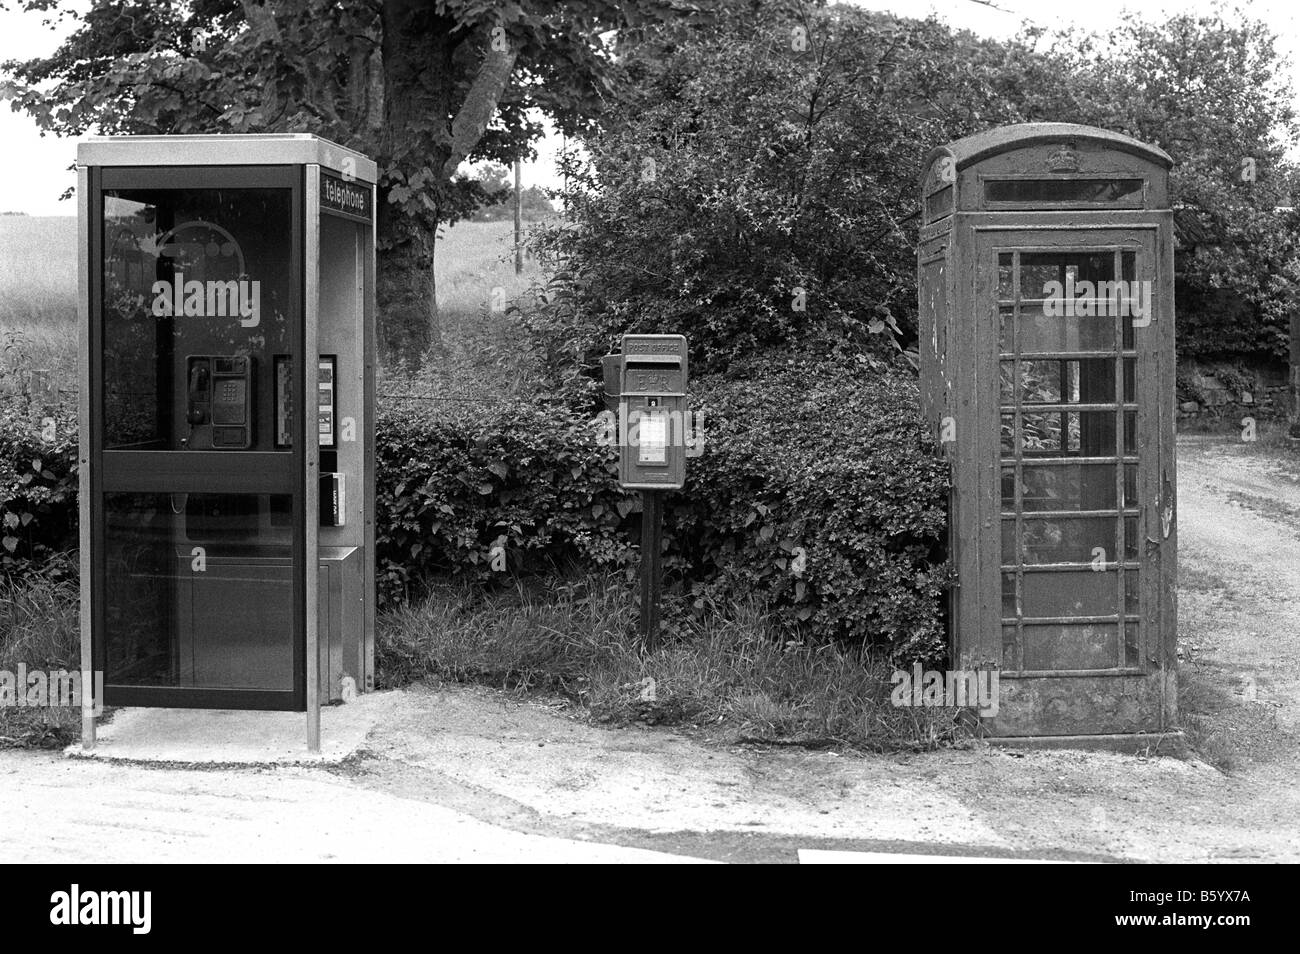 UK England Cheshire neglected K6 phone box being replaced by new KX100 booth in 1980s - Stock Image